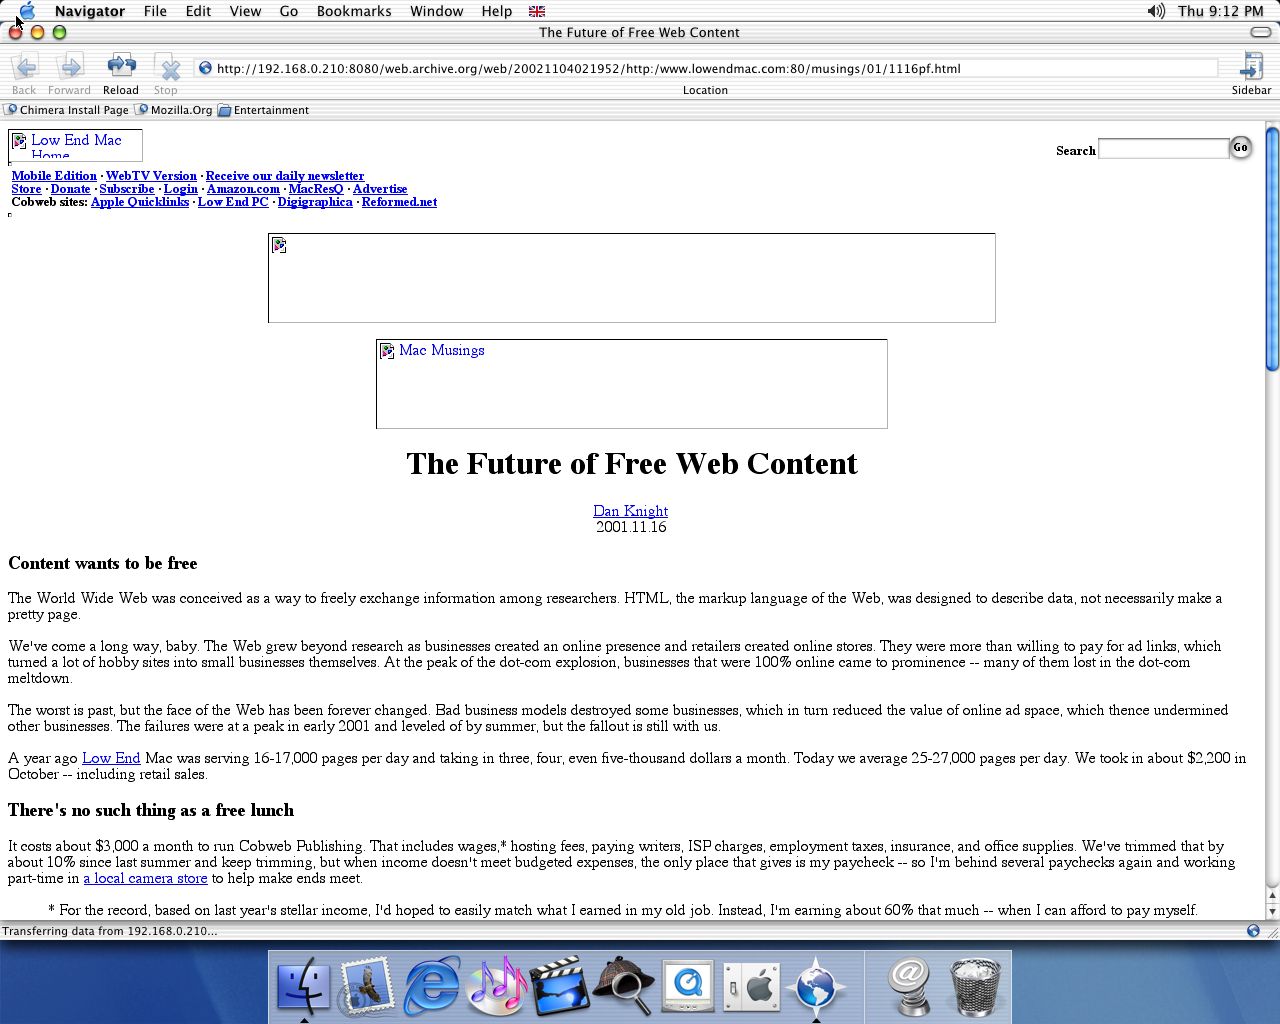 OS X 10.1 PPC with Chimera 0.6 displaying a page from Low End Mac archived at November 04, 2002 at 02:19:52